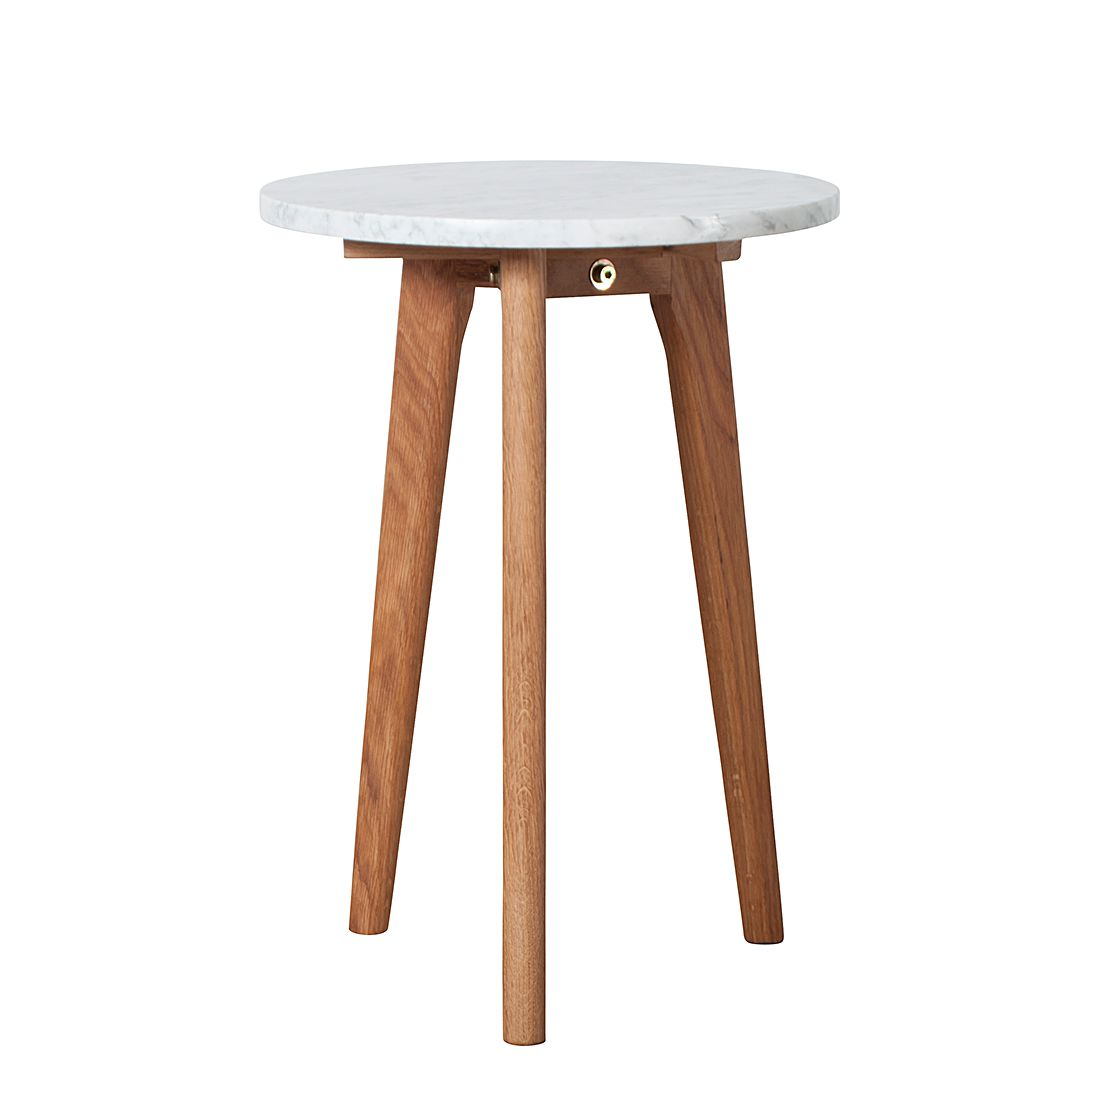 Table d'appoint Stone S - Blanc, Zuiver